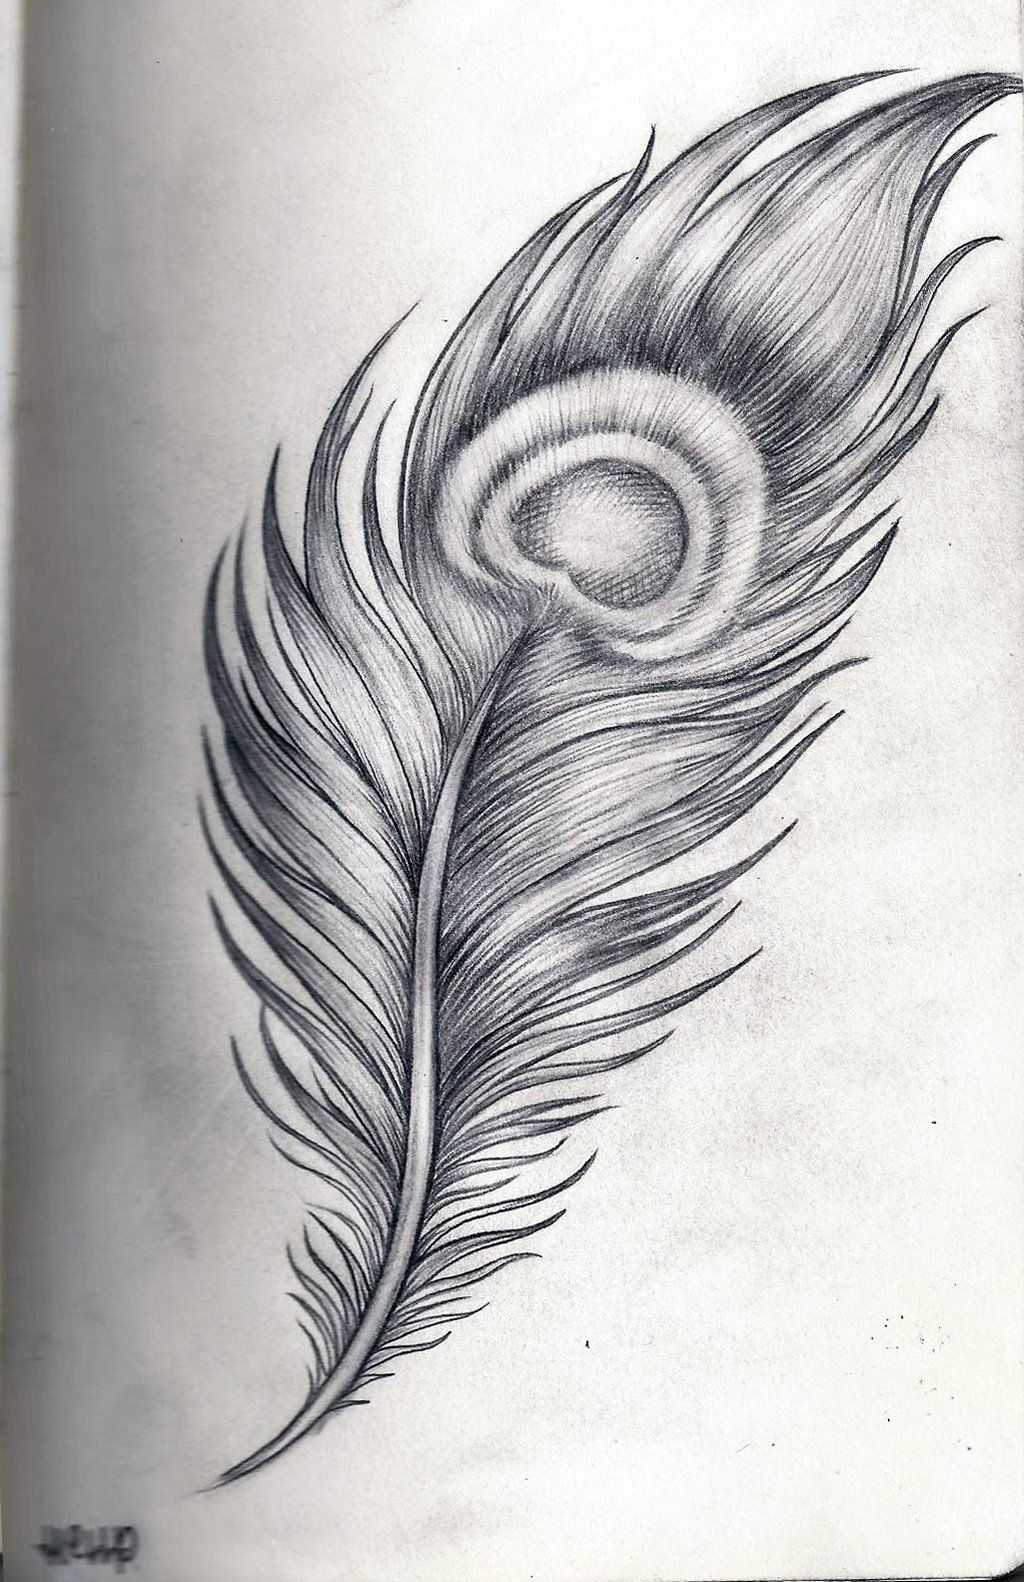 Uncategorized How To Draw Peacock Feathers hell p art peacock feather by hell2thep on deviantart tekenen deviantart